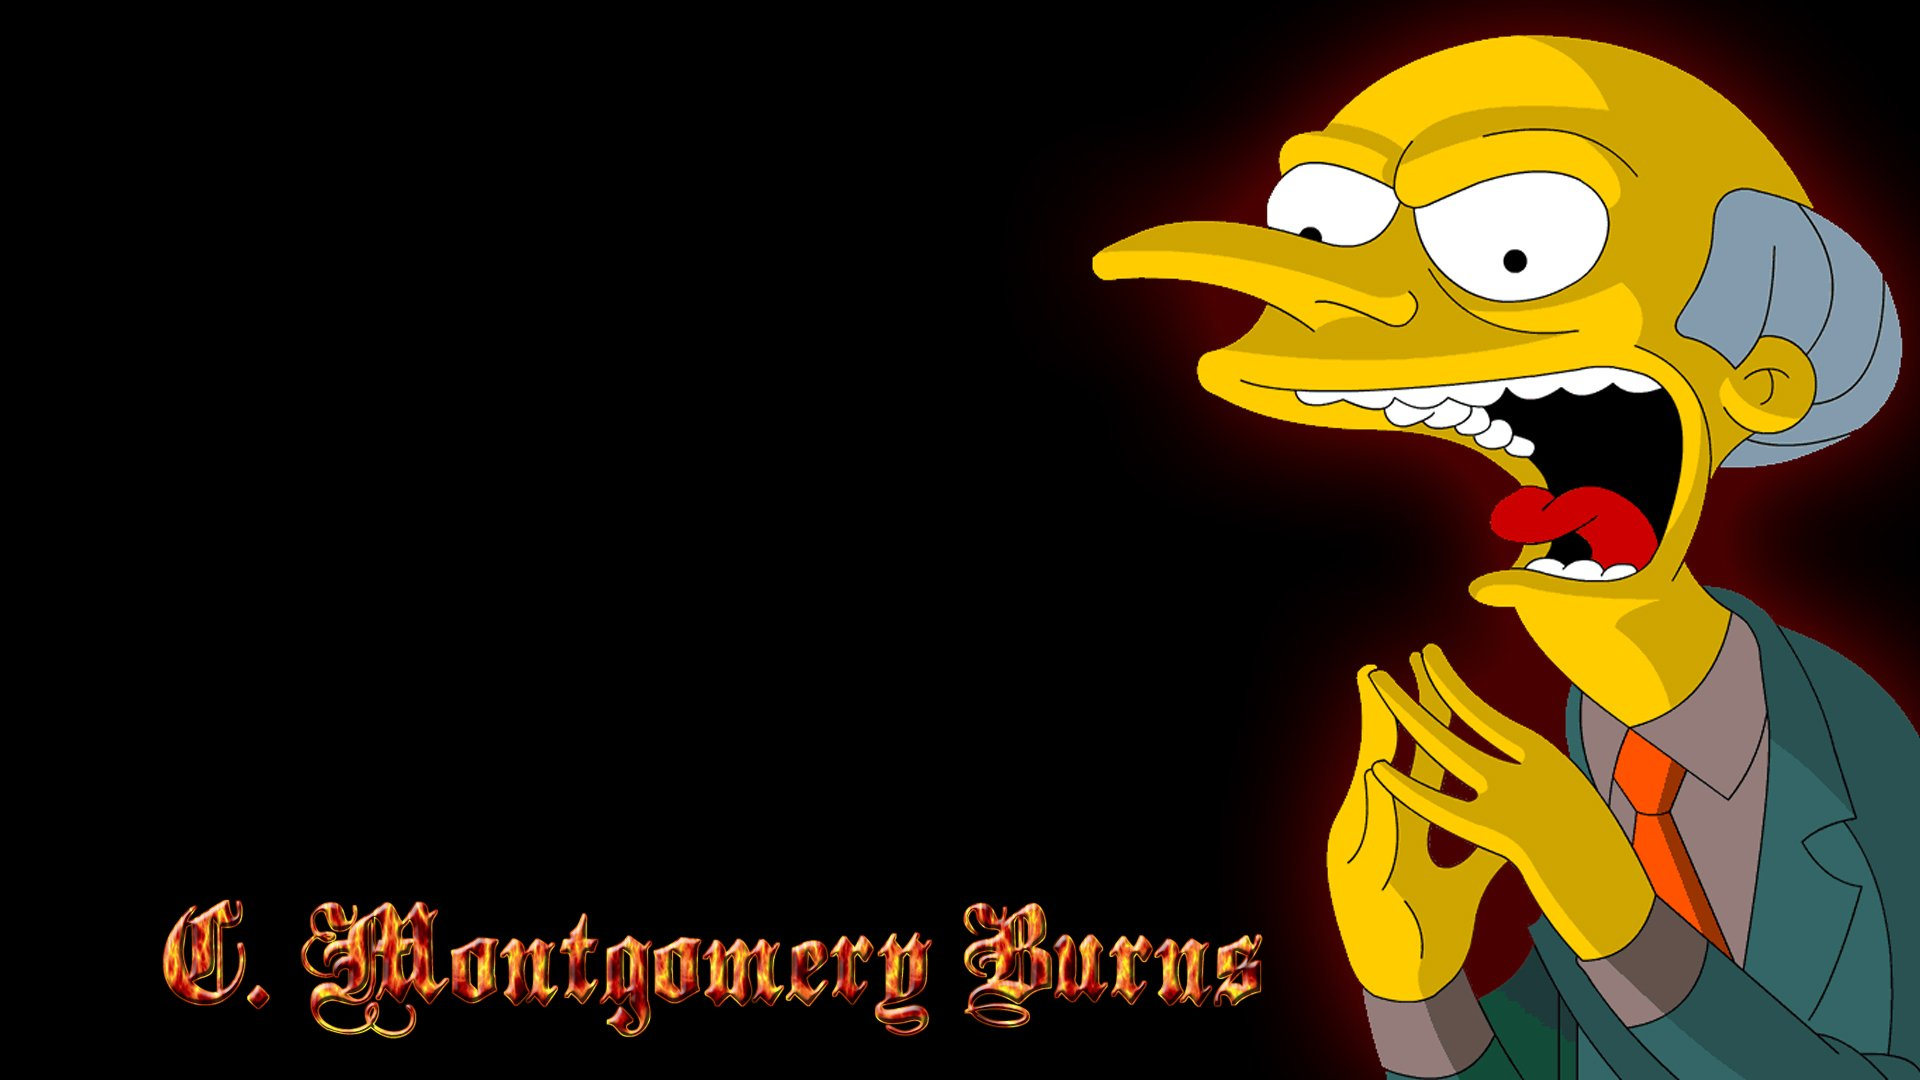 TV Show - The Simpsons  Burns Montgomery Burns Wallpaper